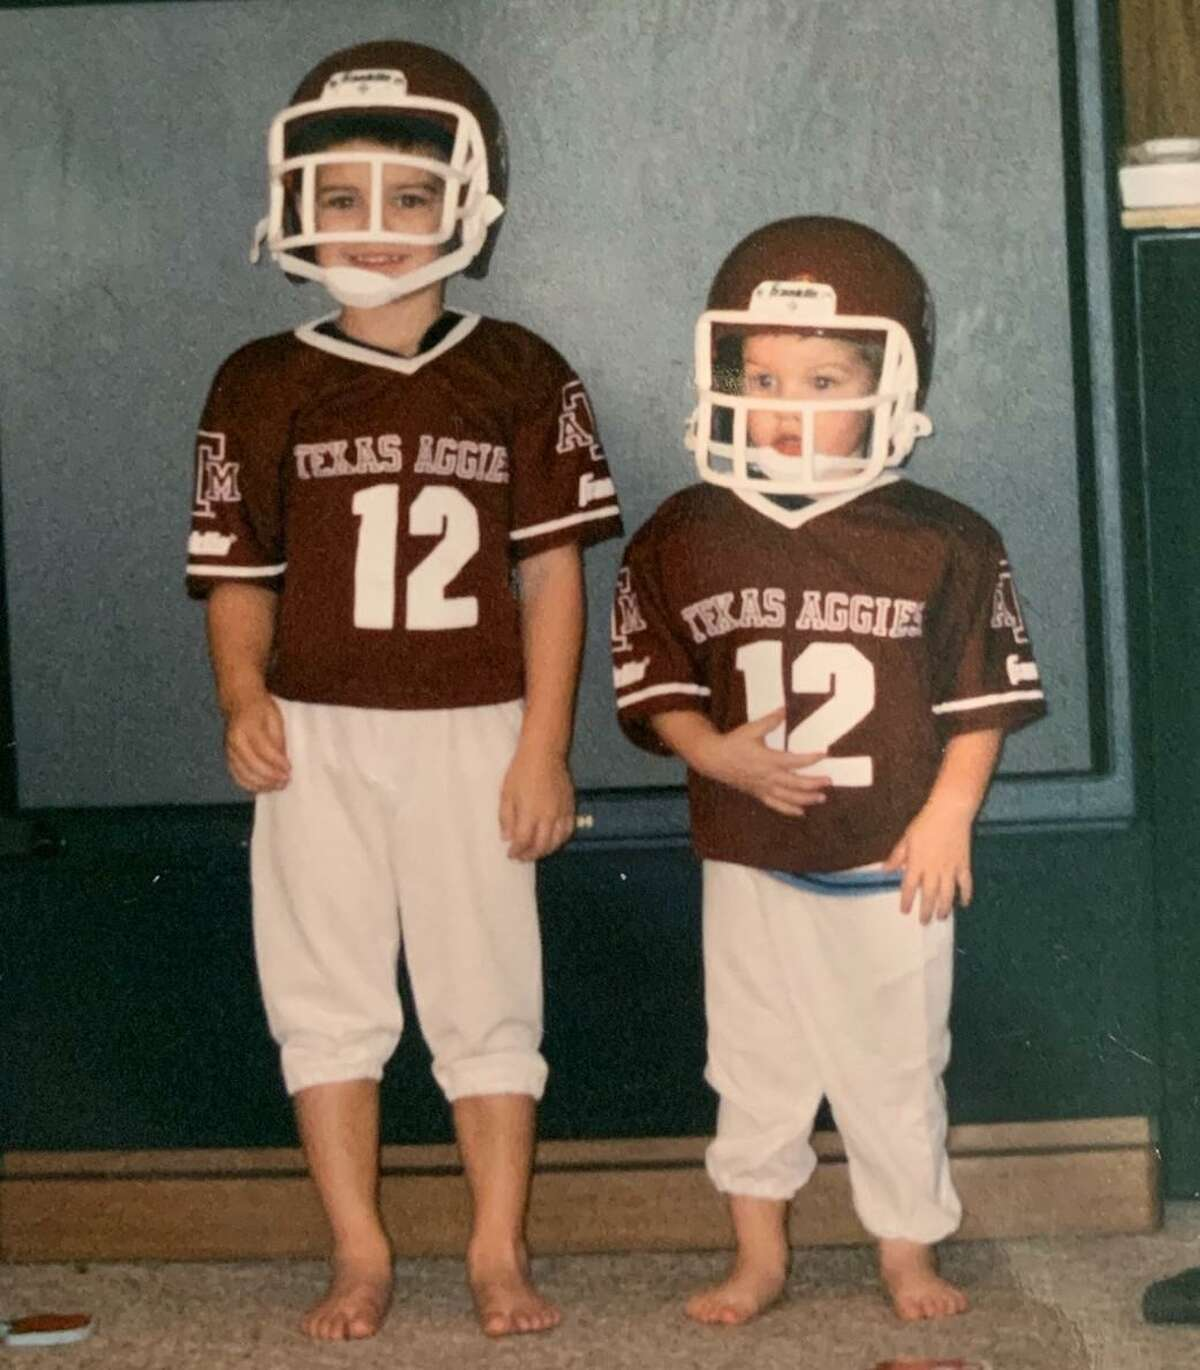 Cagan Baldree, left, at age 5 with brother Callahan, has made good on his desire to play for the Aggies.